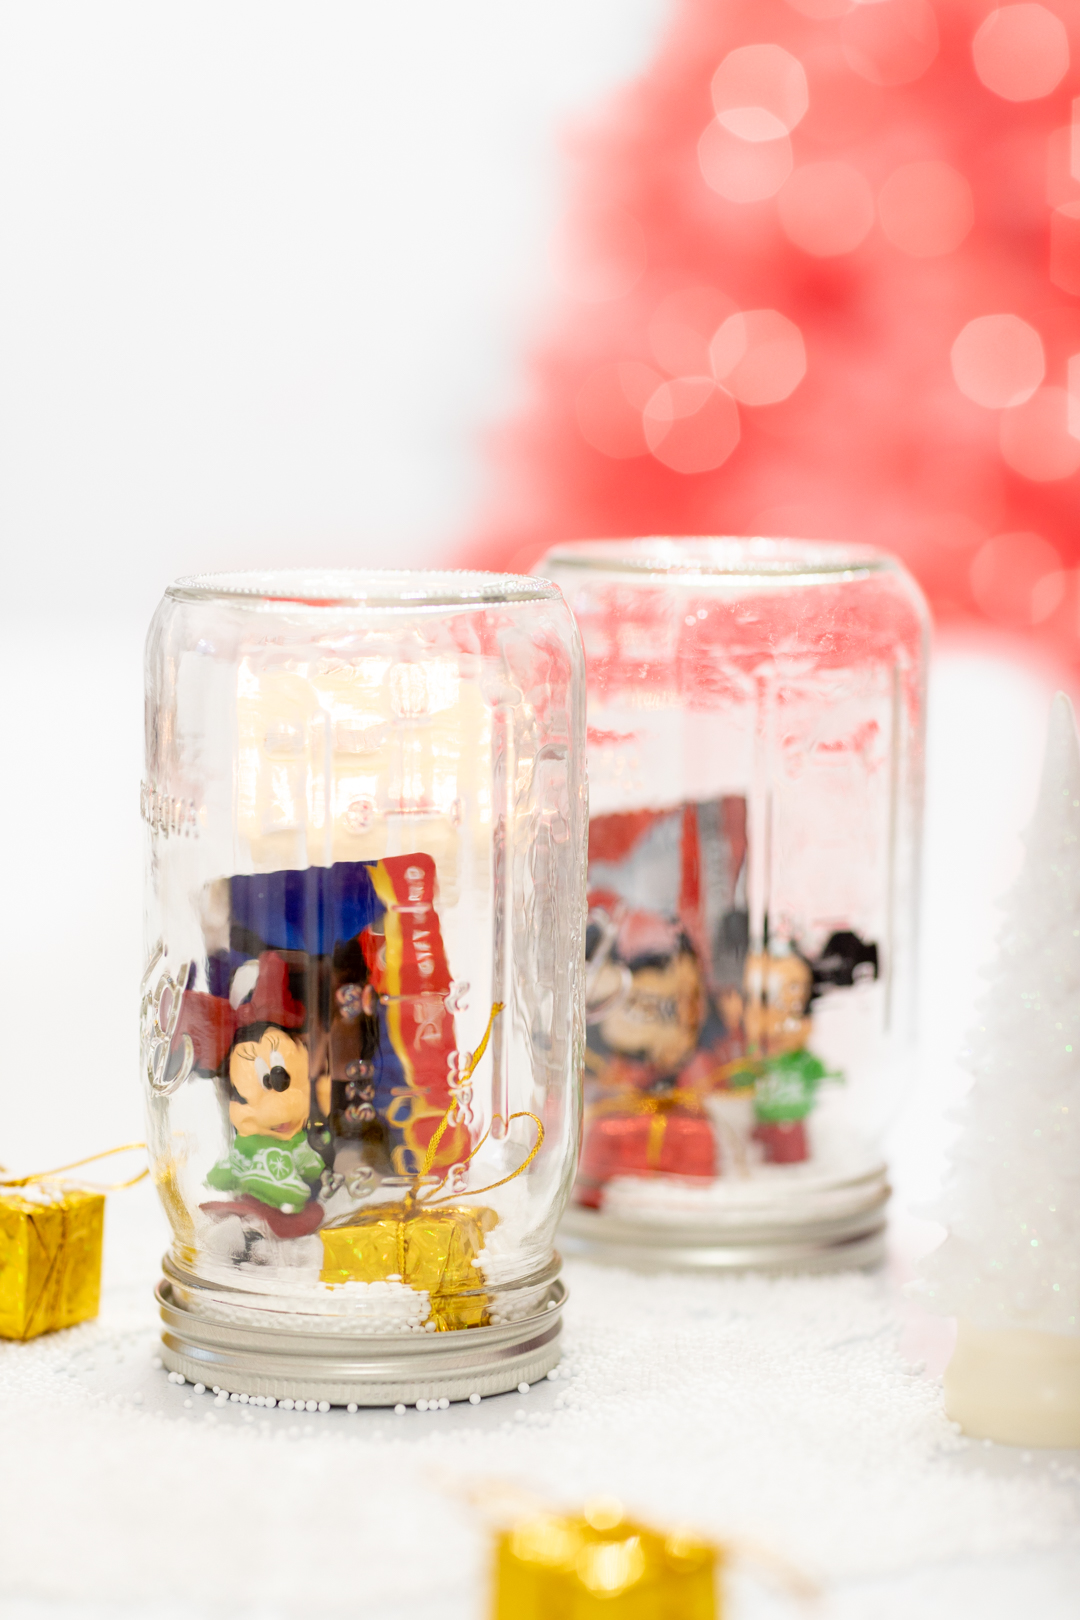 Mickey mouse ornament in a mason jar gift